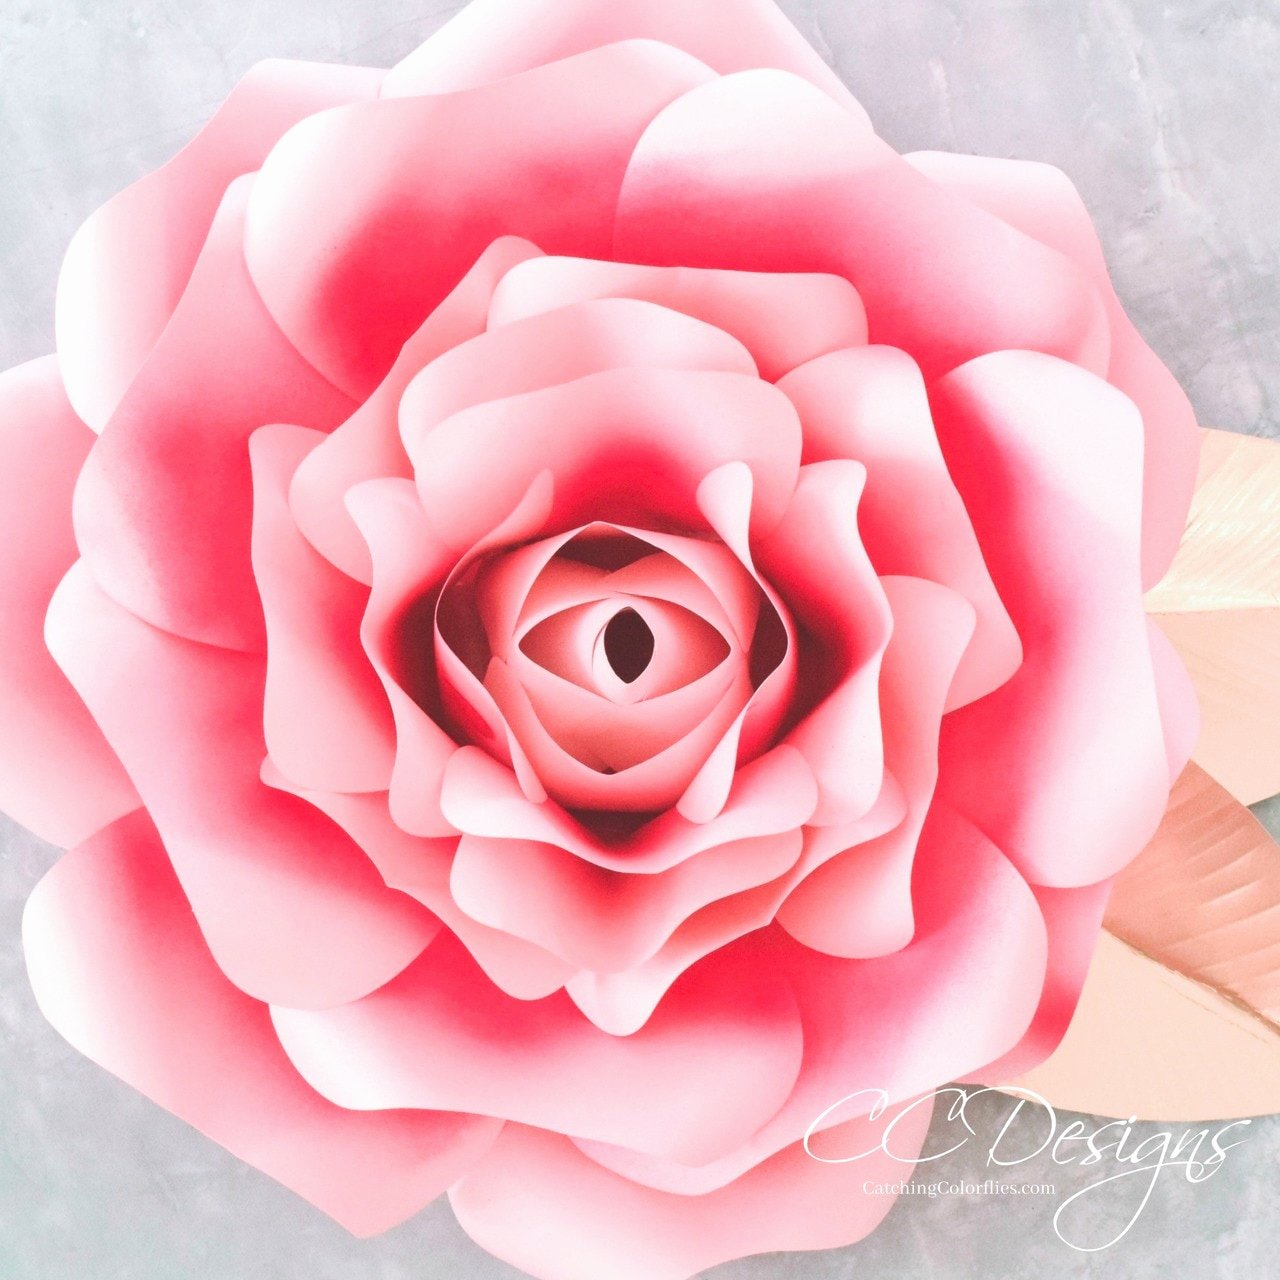 Giant Rose Template New Alora Garden Giant Paper Rose Template & Tutorial